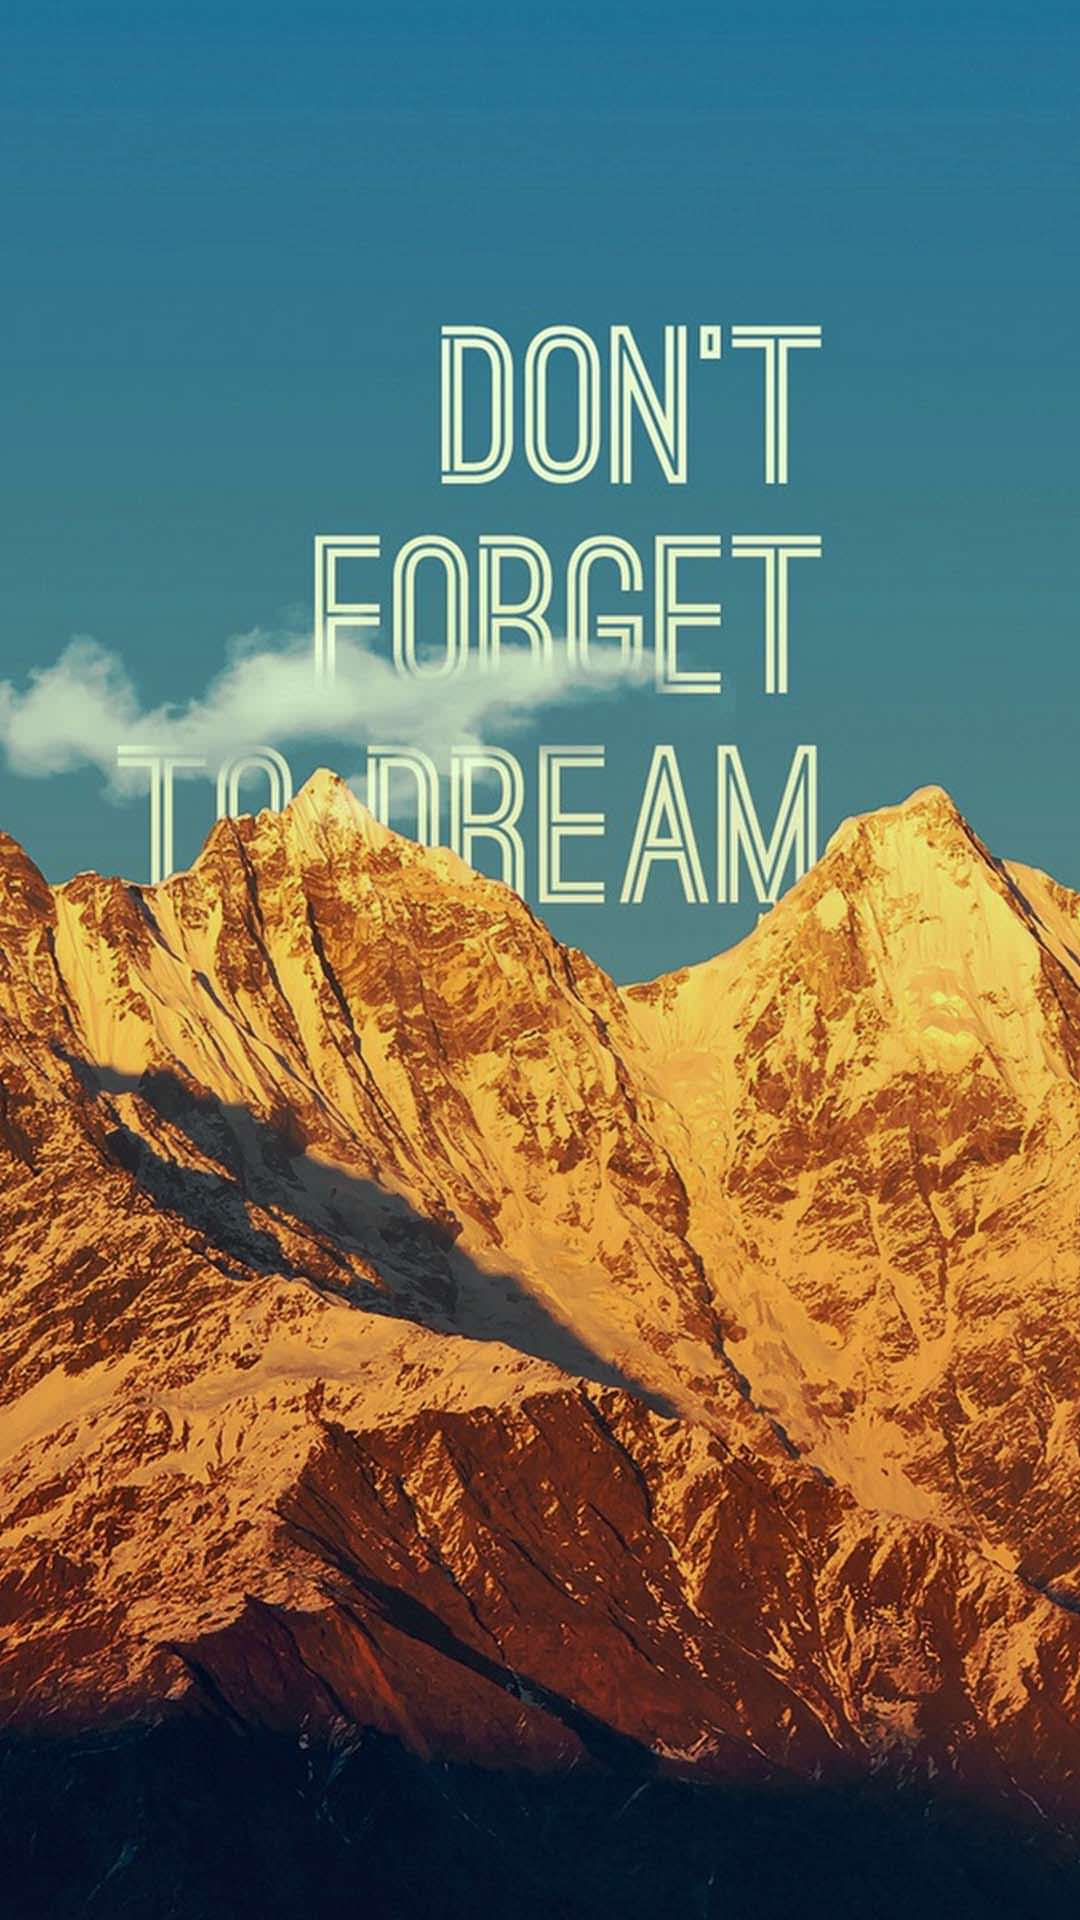 35+ Best Motivational iPhone Wallpapers To Boost Yourself ...